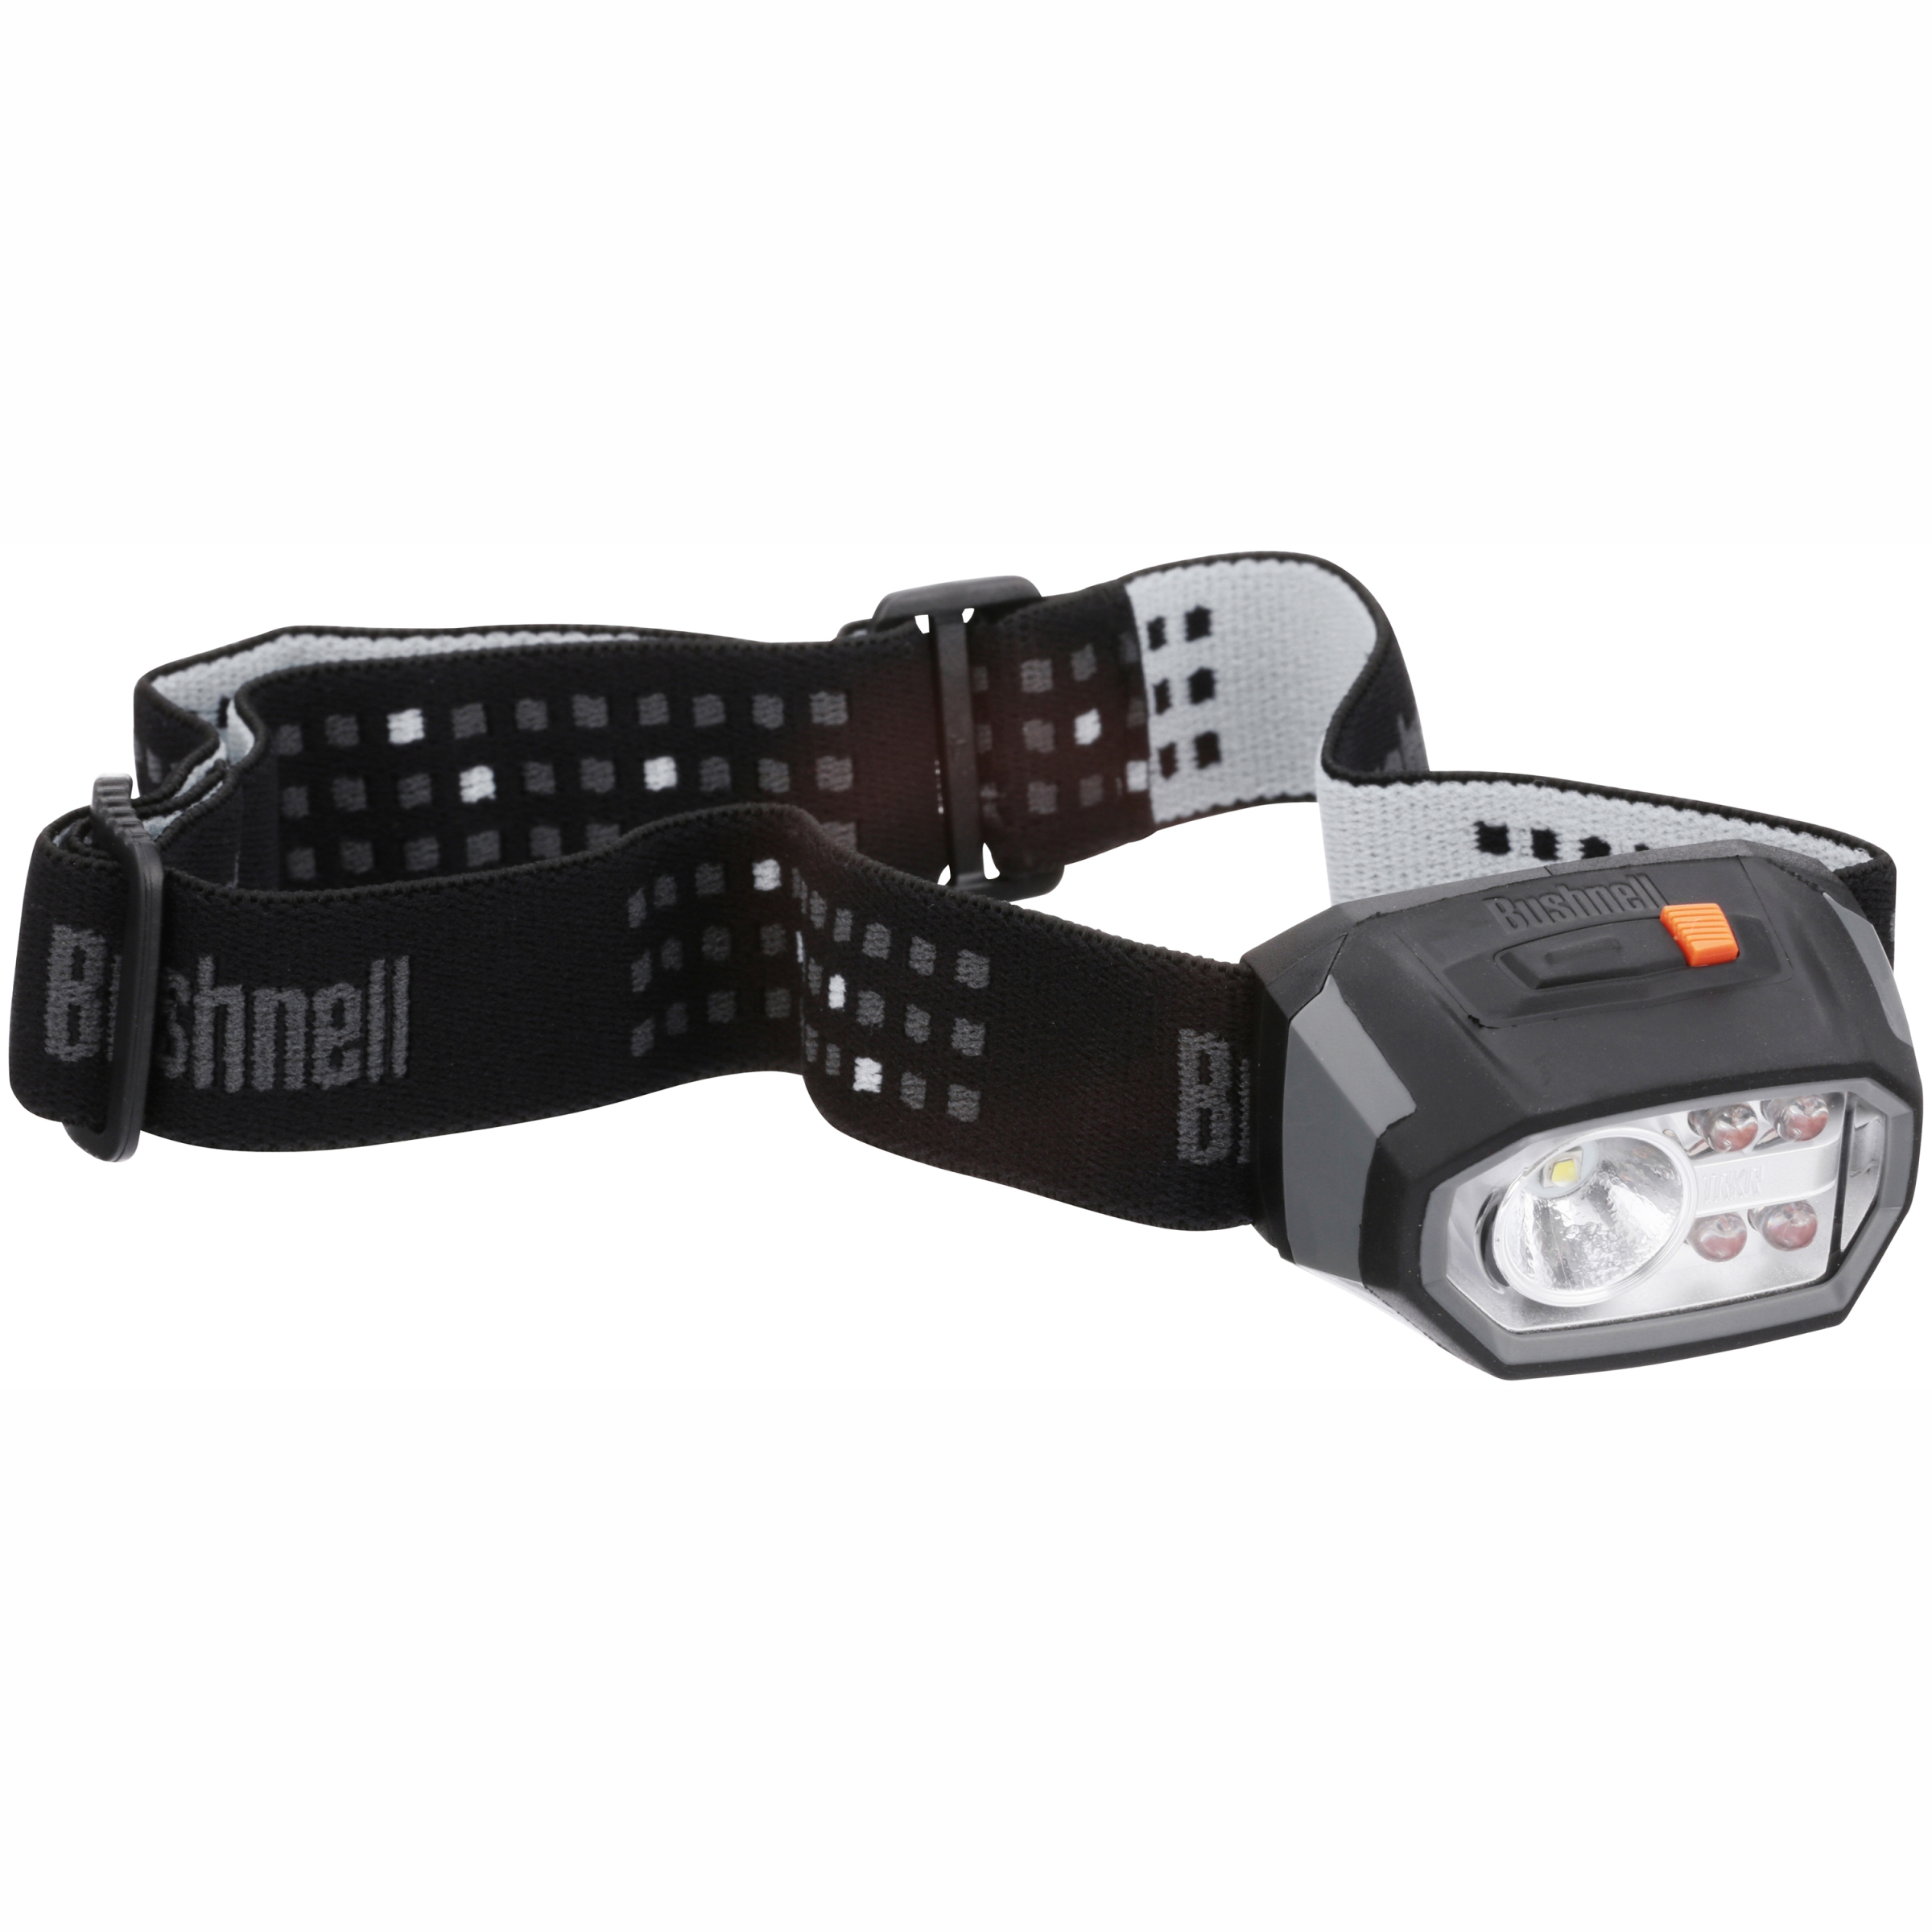 Bushnell® TRKR™ H175L Multi-Color Lights Headlamp with Batteries